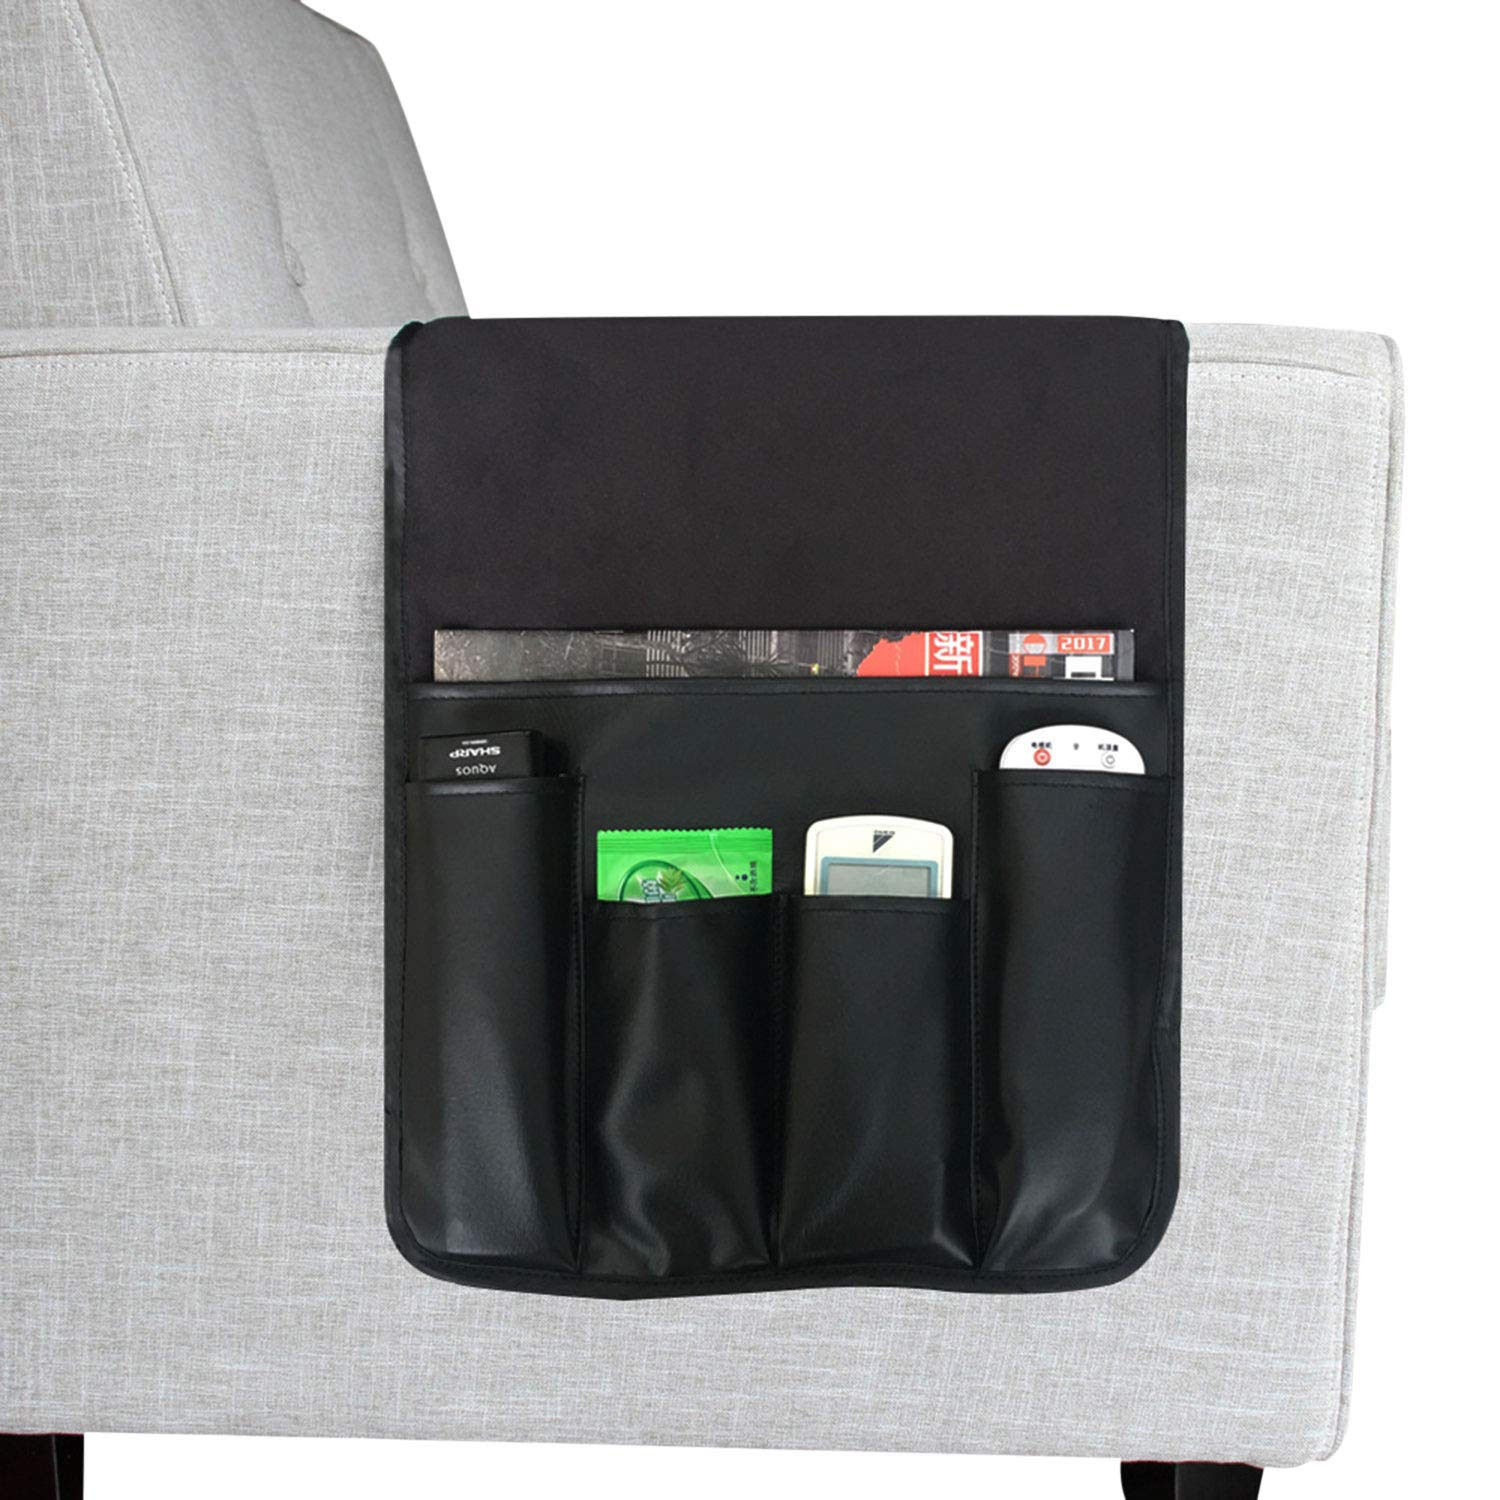 Clobeau Armrest Caddy,Couch Caddy Remote Organizer Magazine Holders Armchair Caddy Arm Chair Remote Control Sofa Caddy Arm Rest Holder Pocket Organizer Space Saver for Remote,Cell Phone,Books,Pencils